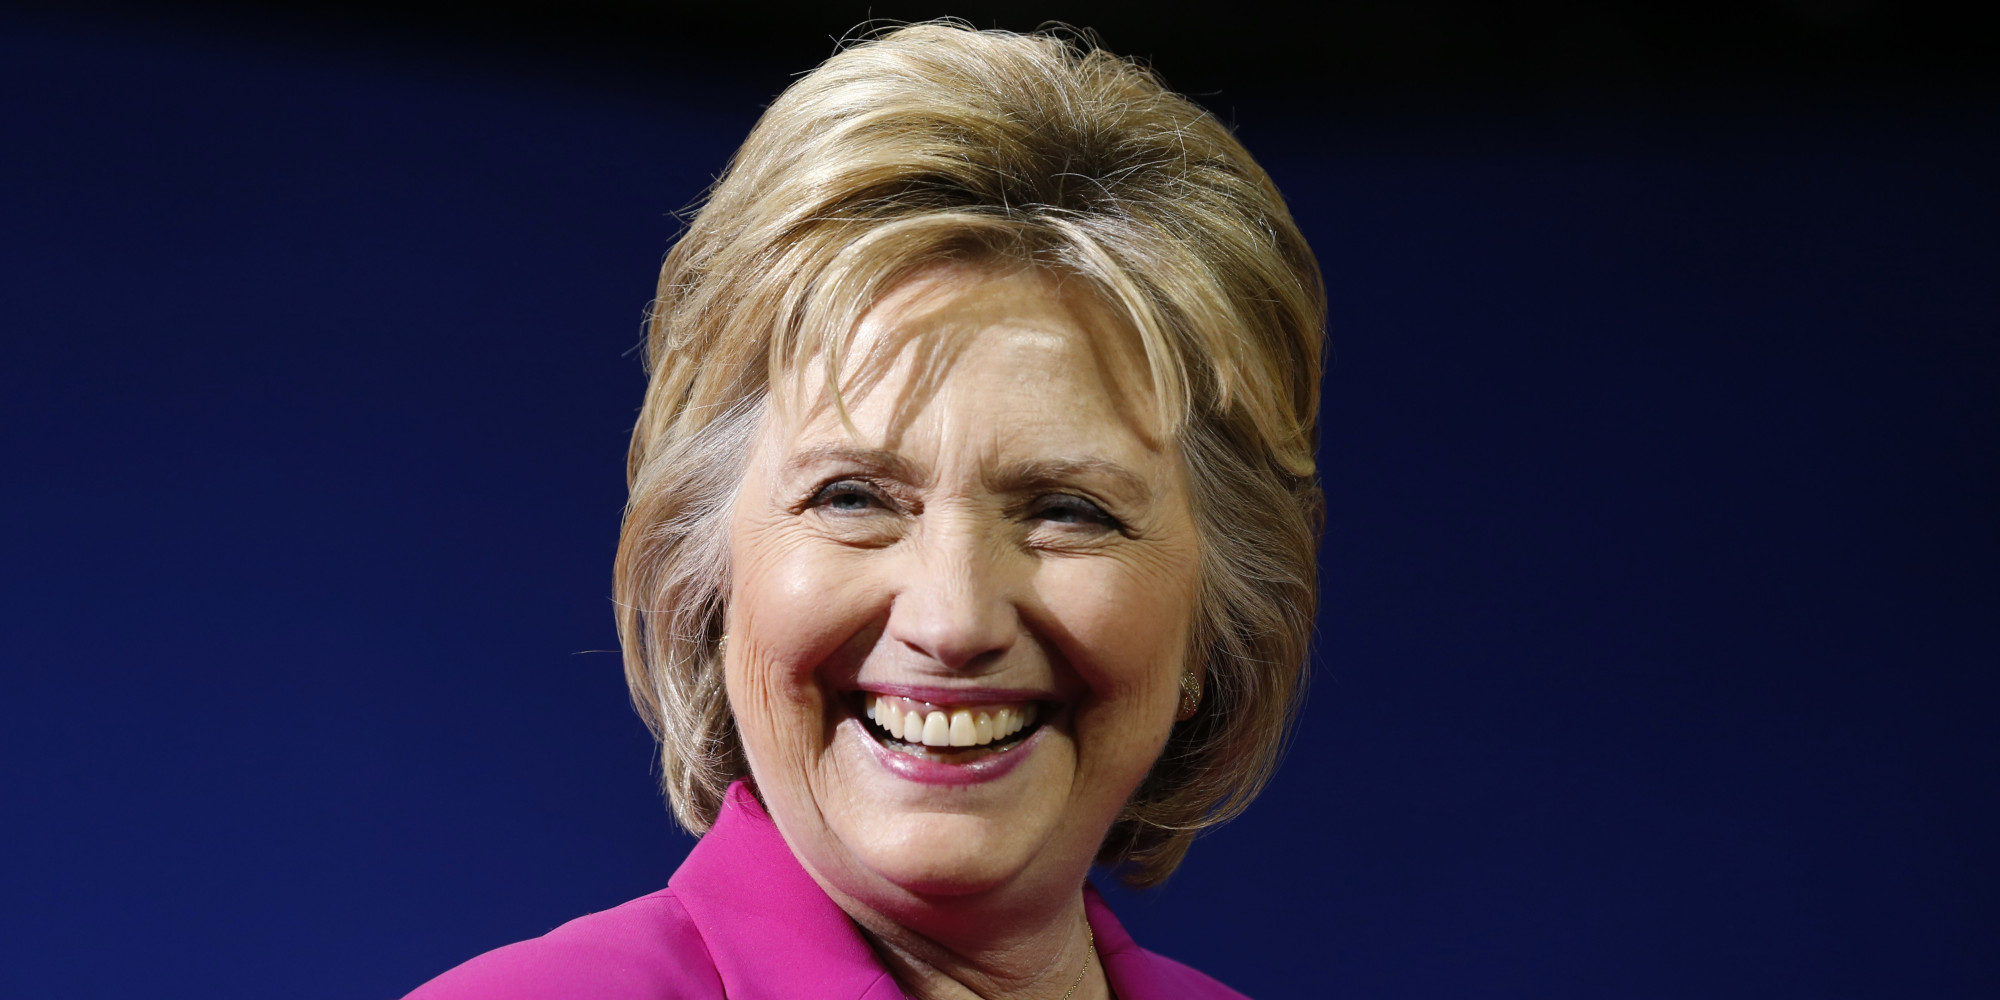 hillary clinton first woman to run As the wife of the country's former president jerry rawlings, it's no surprise that  the former first lady has been compared to hillary clinton.